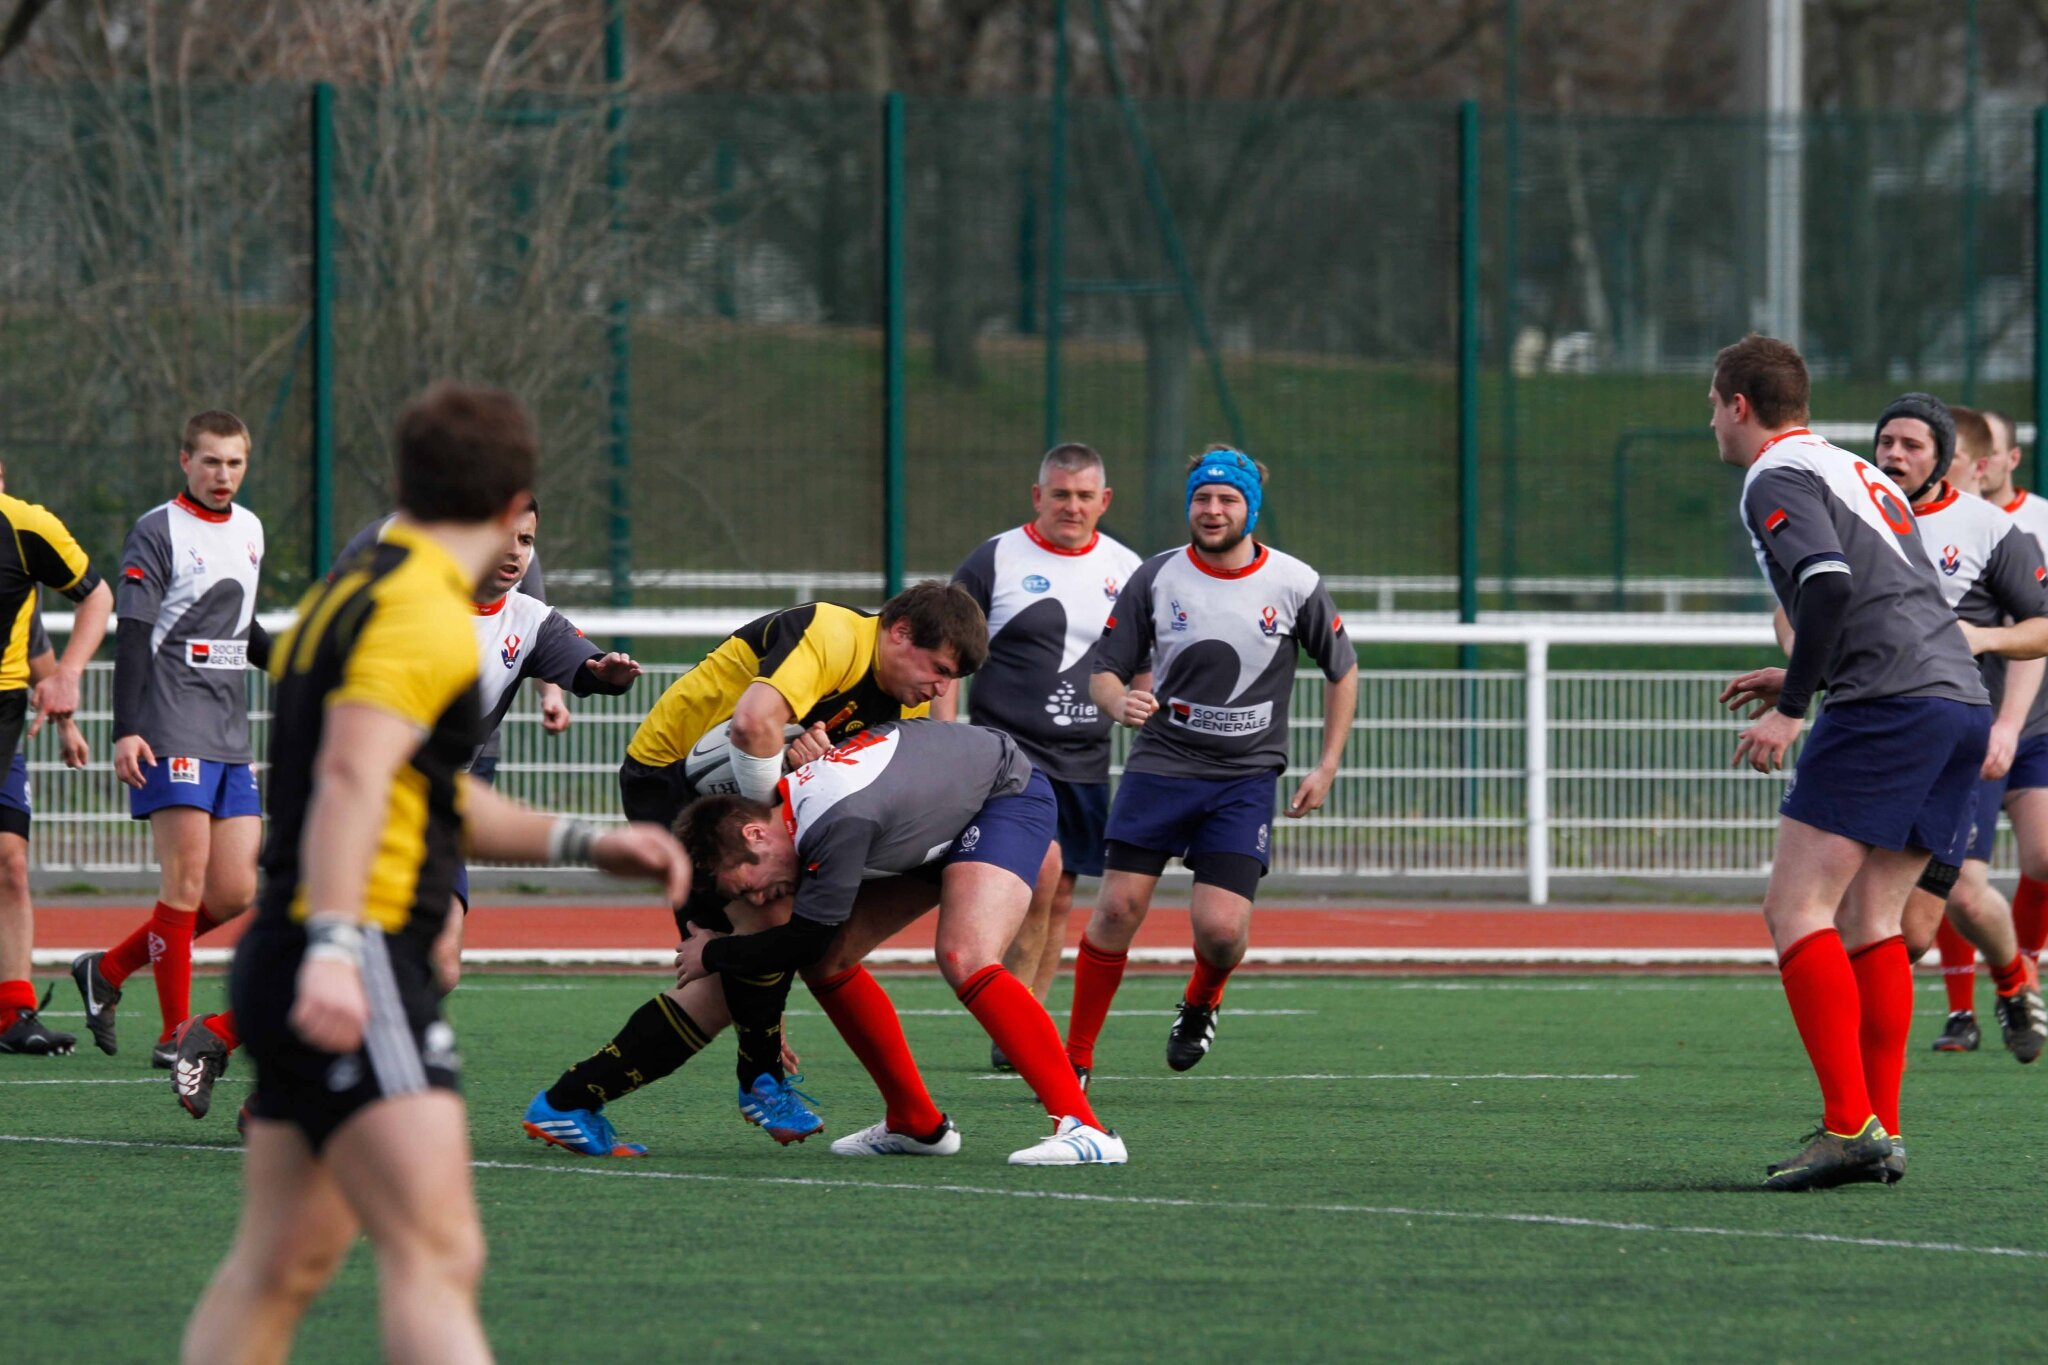 RCP15-RCT-R45